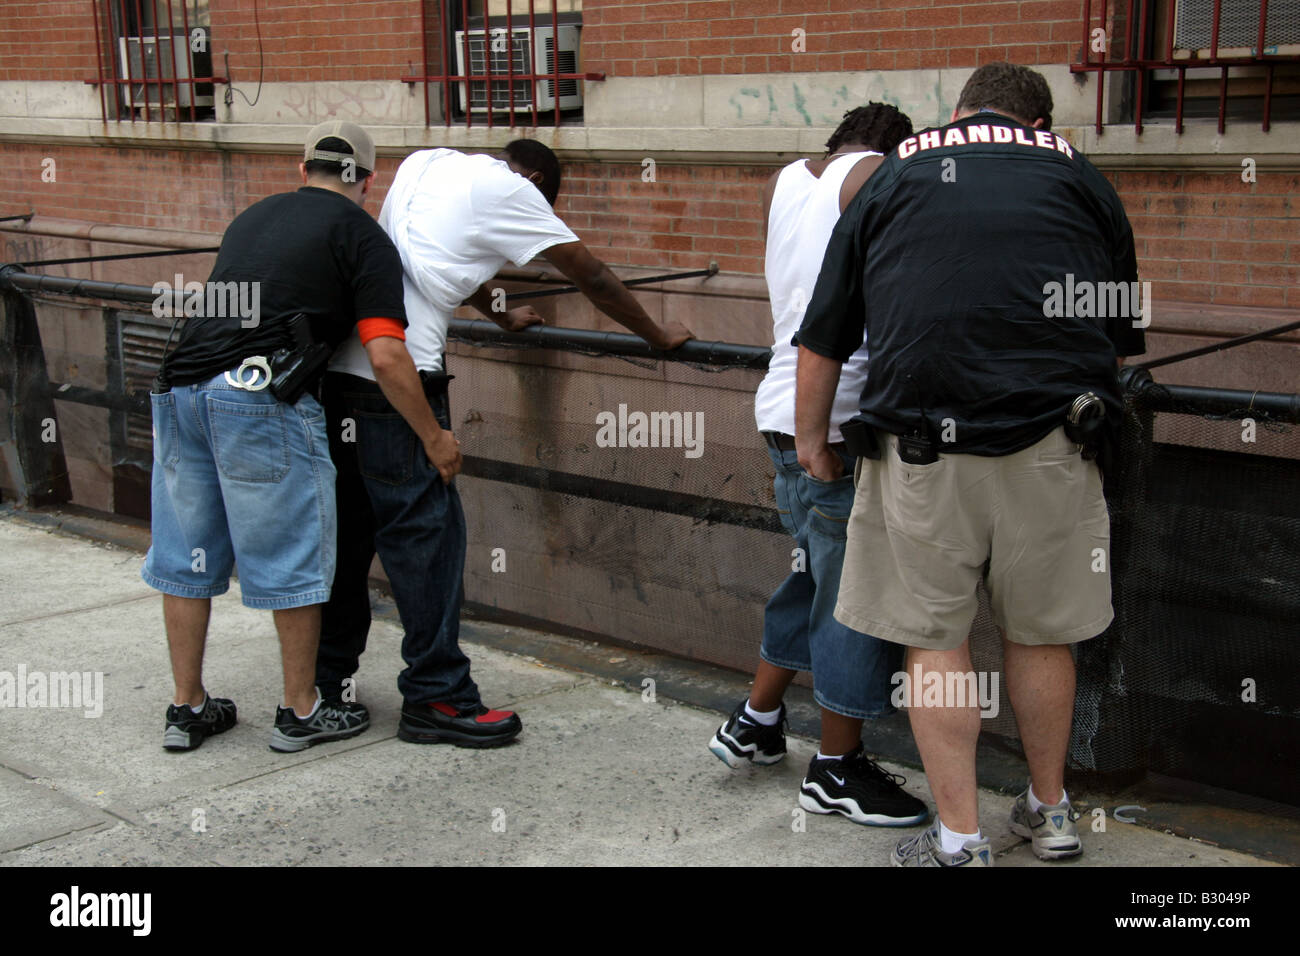 Plain clothes police detectives searching suspects on the street in Harlem New York City - Stock Image